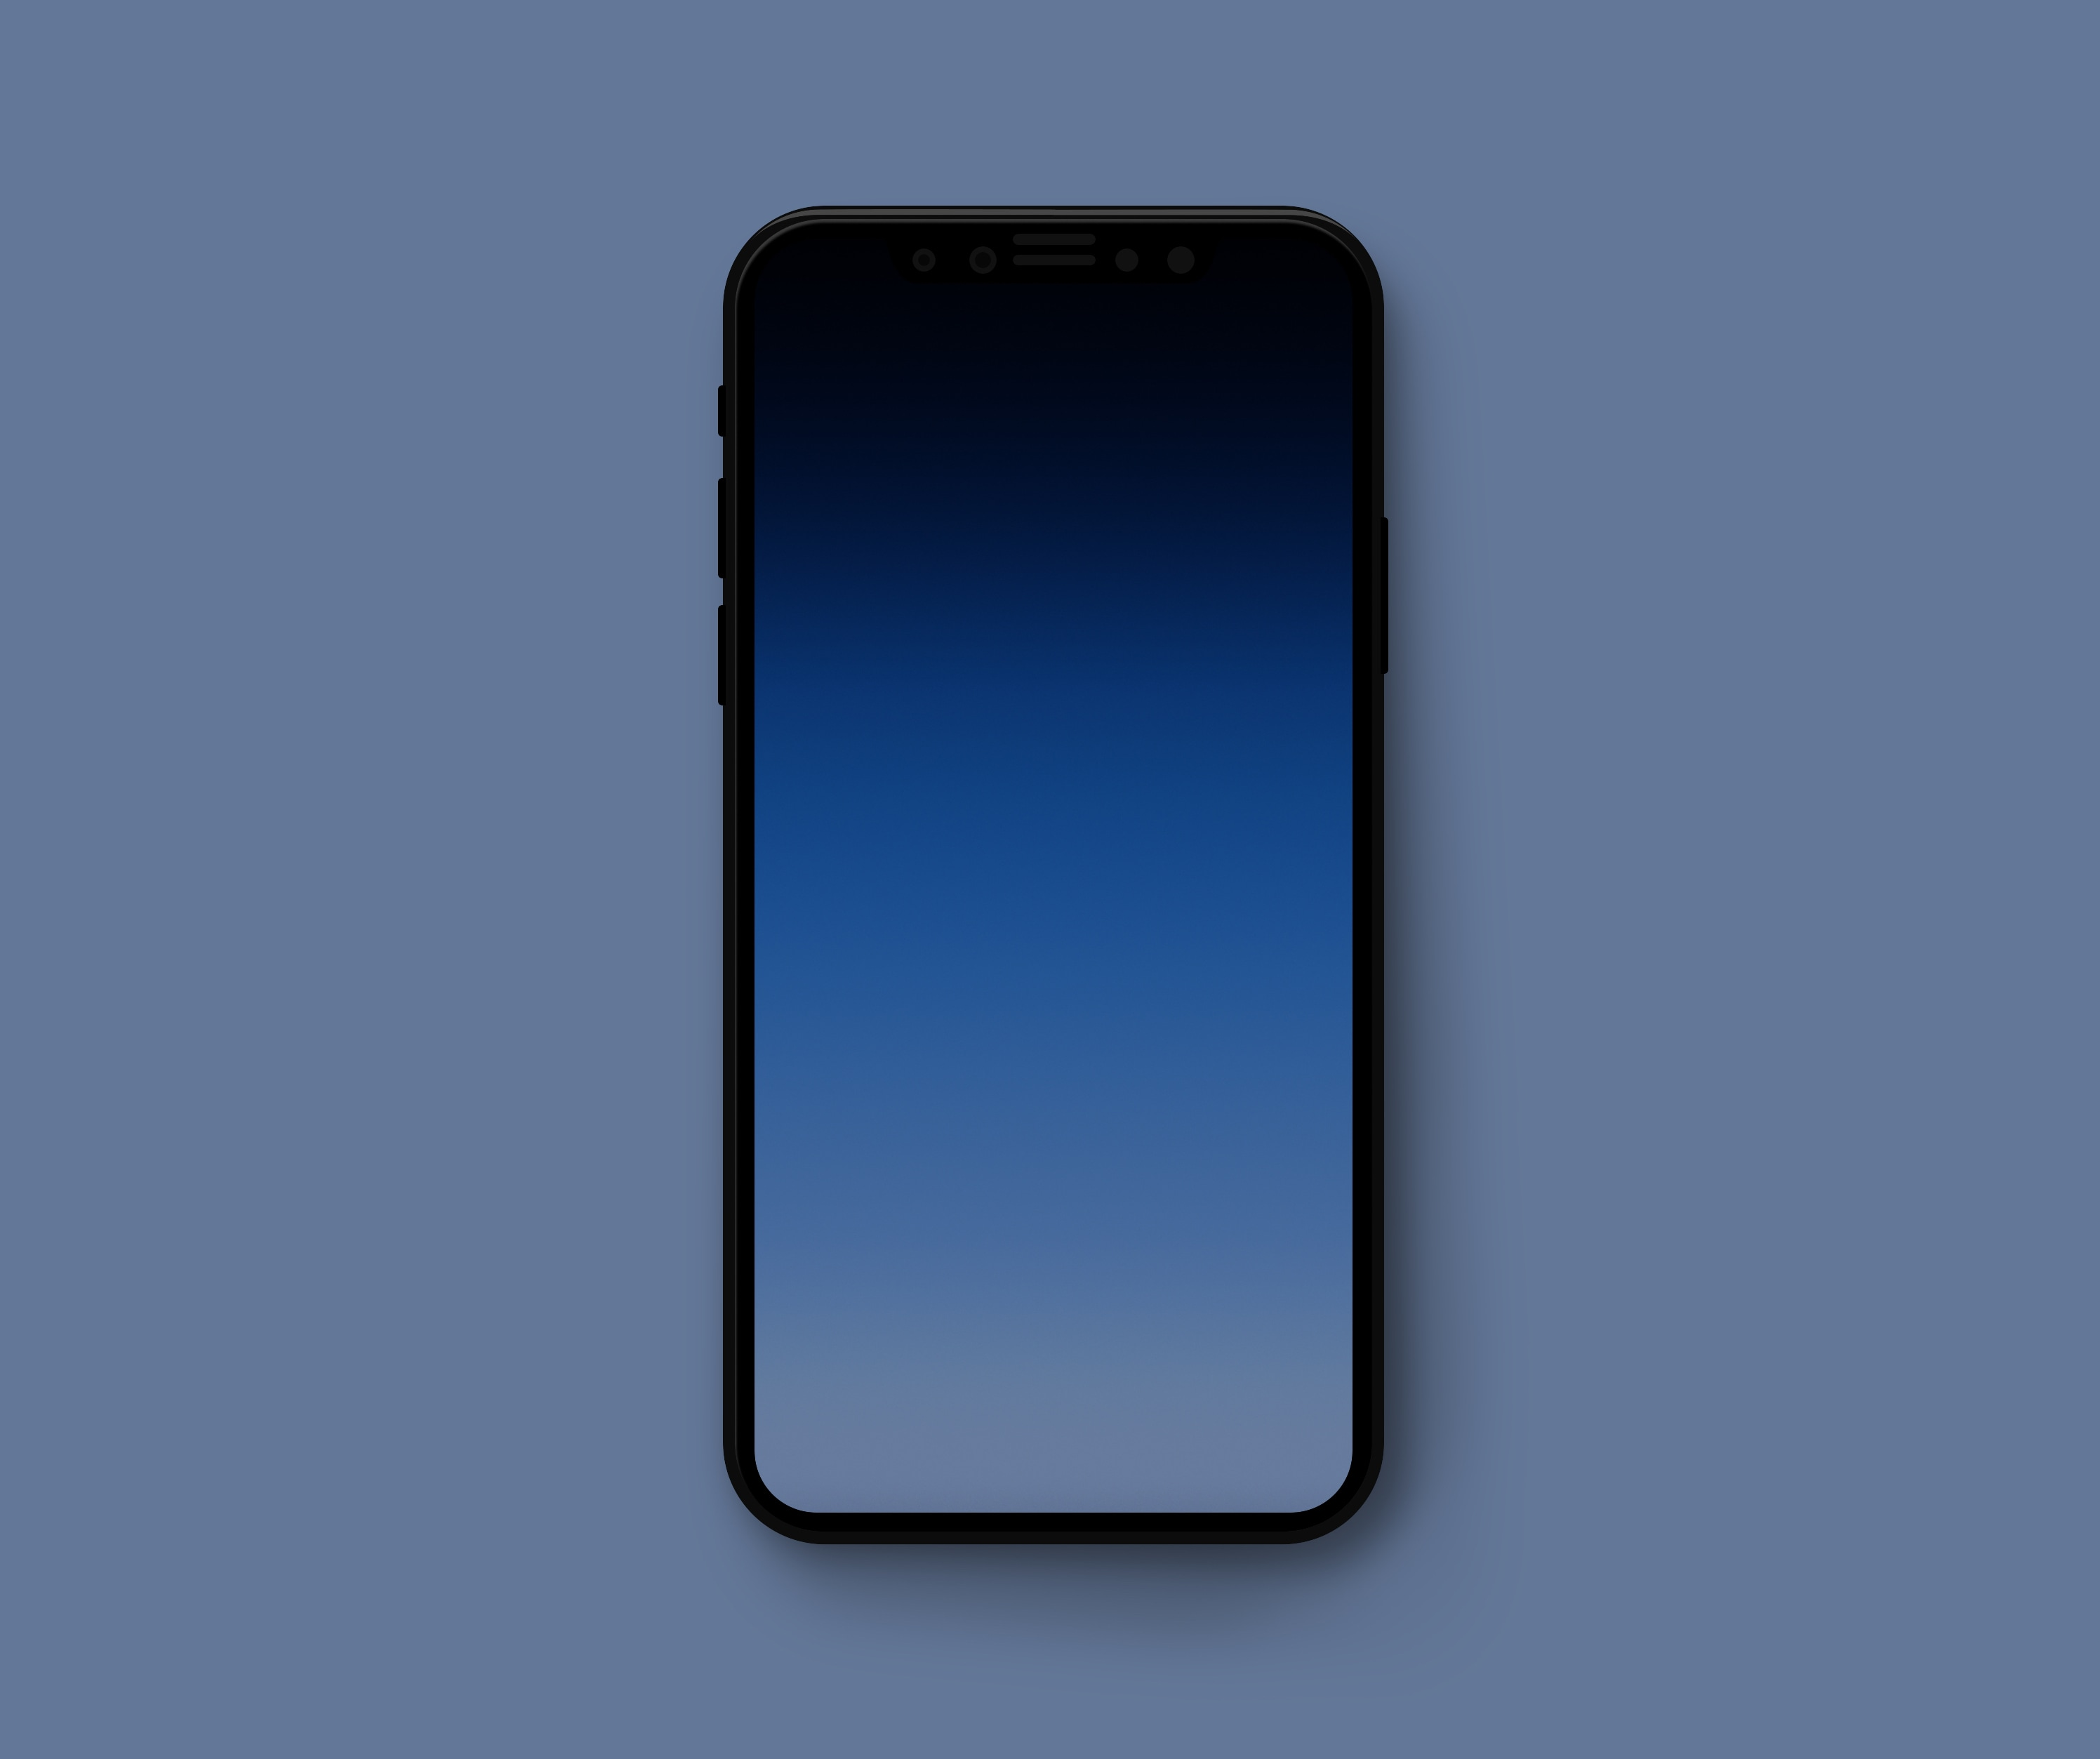 More Wallpaper For Iphone X Minimal Gradient Wallpapers To Hide The Iphone X Notch